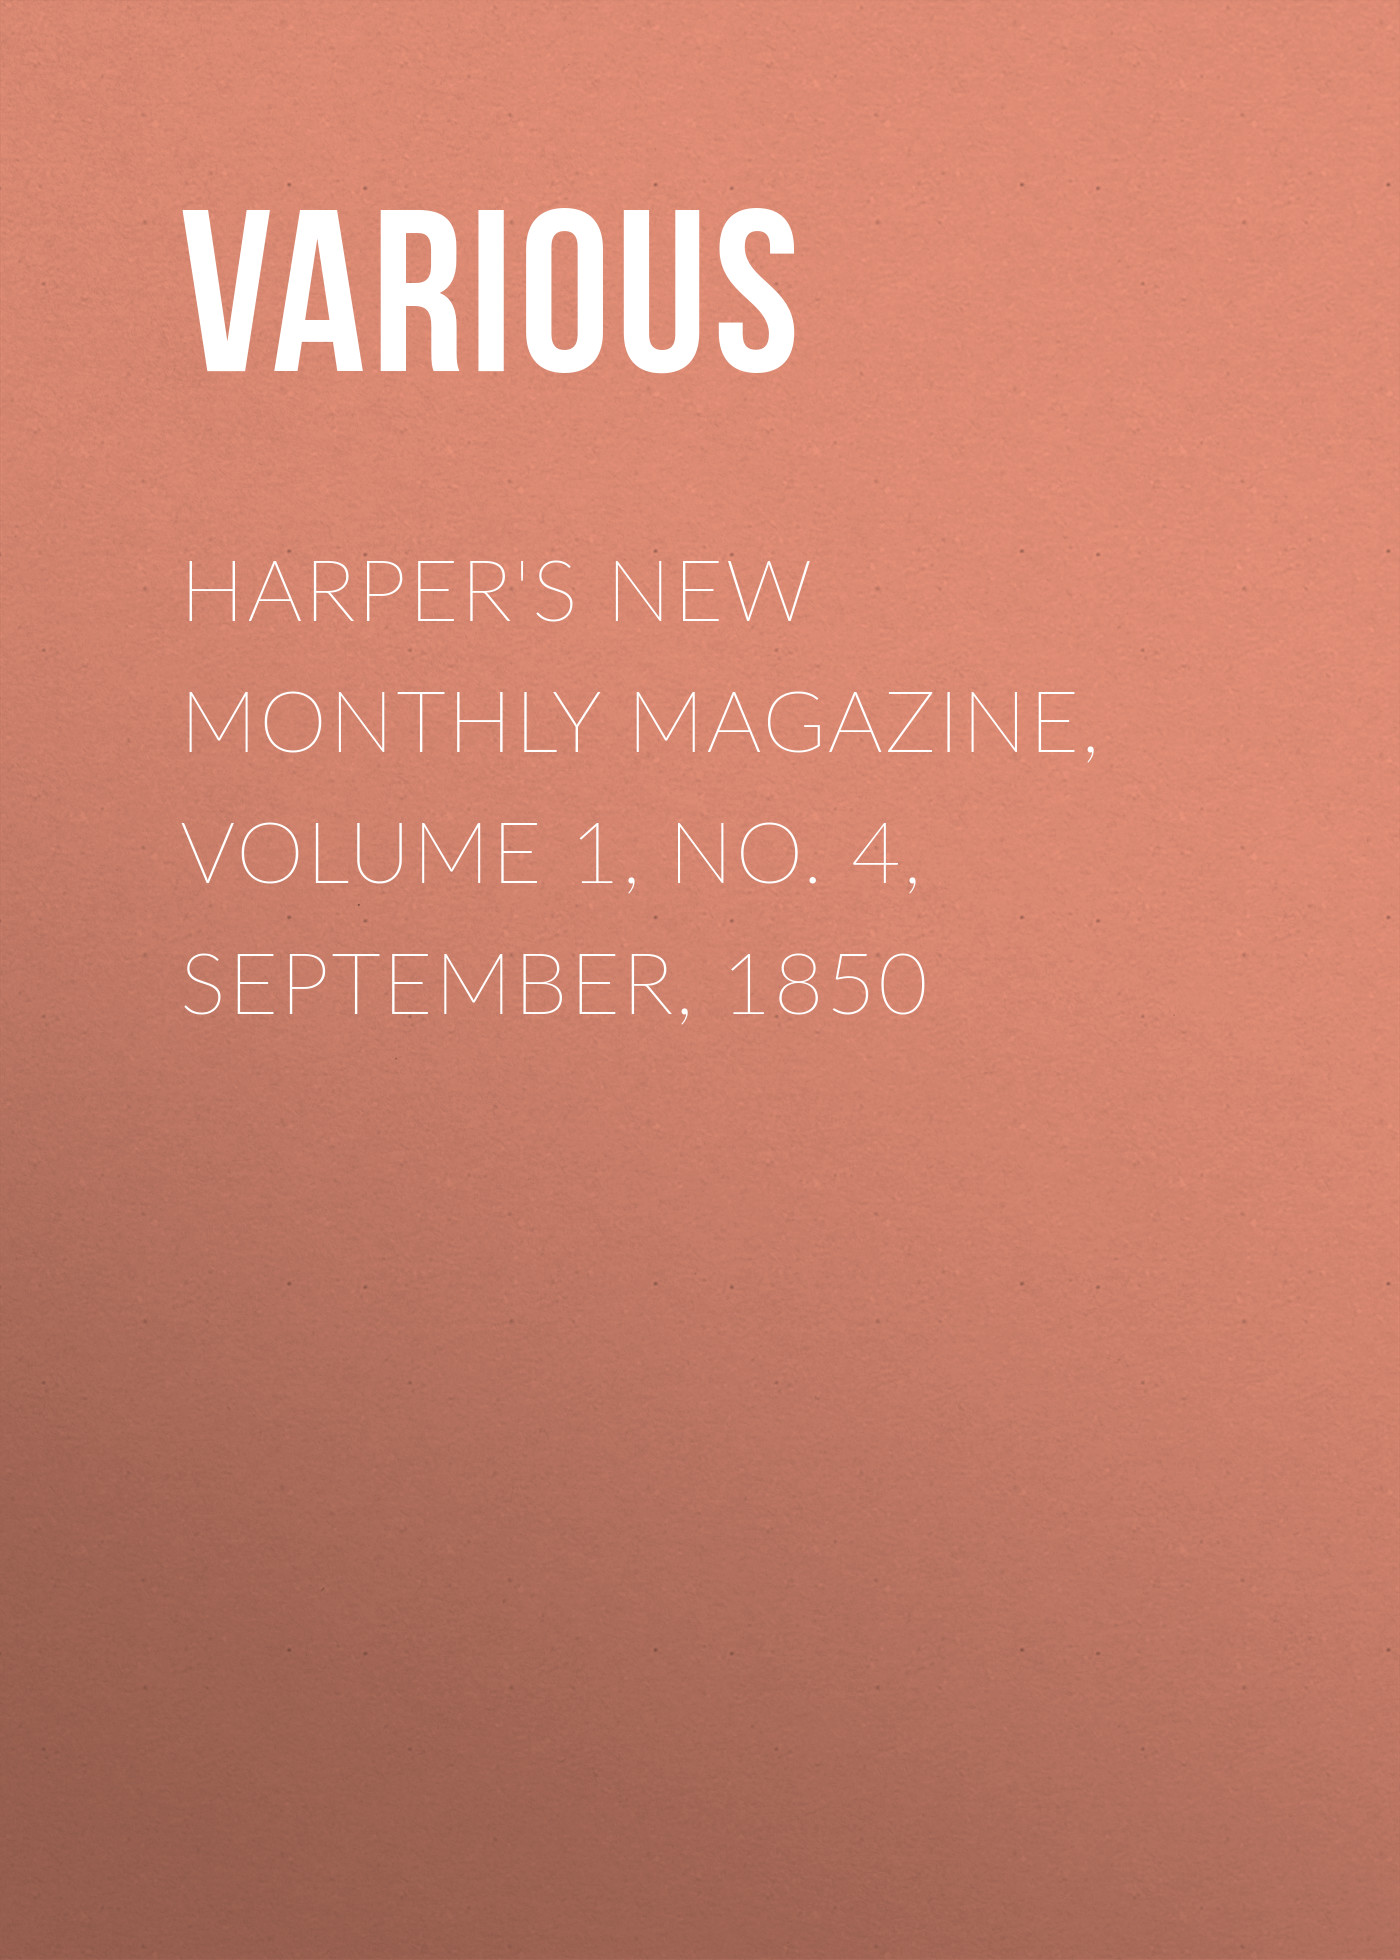 Various Harper's New Monthly Magazine, Volume 1, No. 4, September, 1850 hoodz dvd magazine issue 1